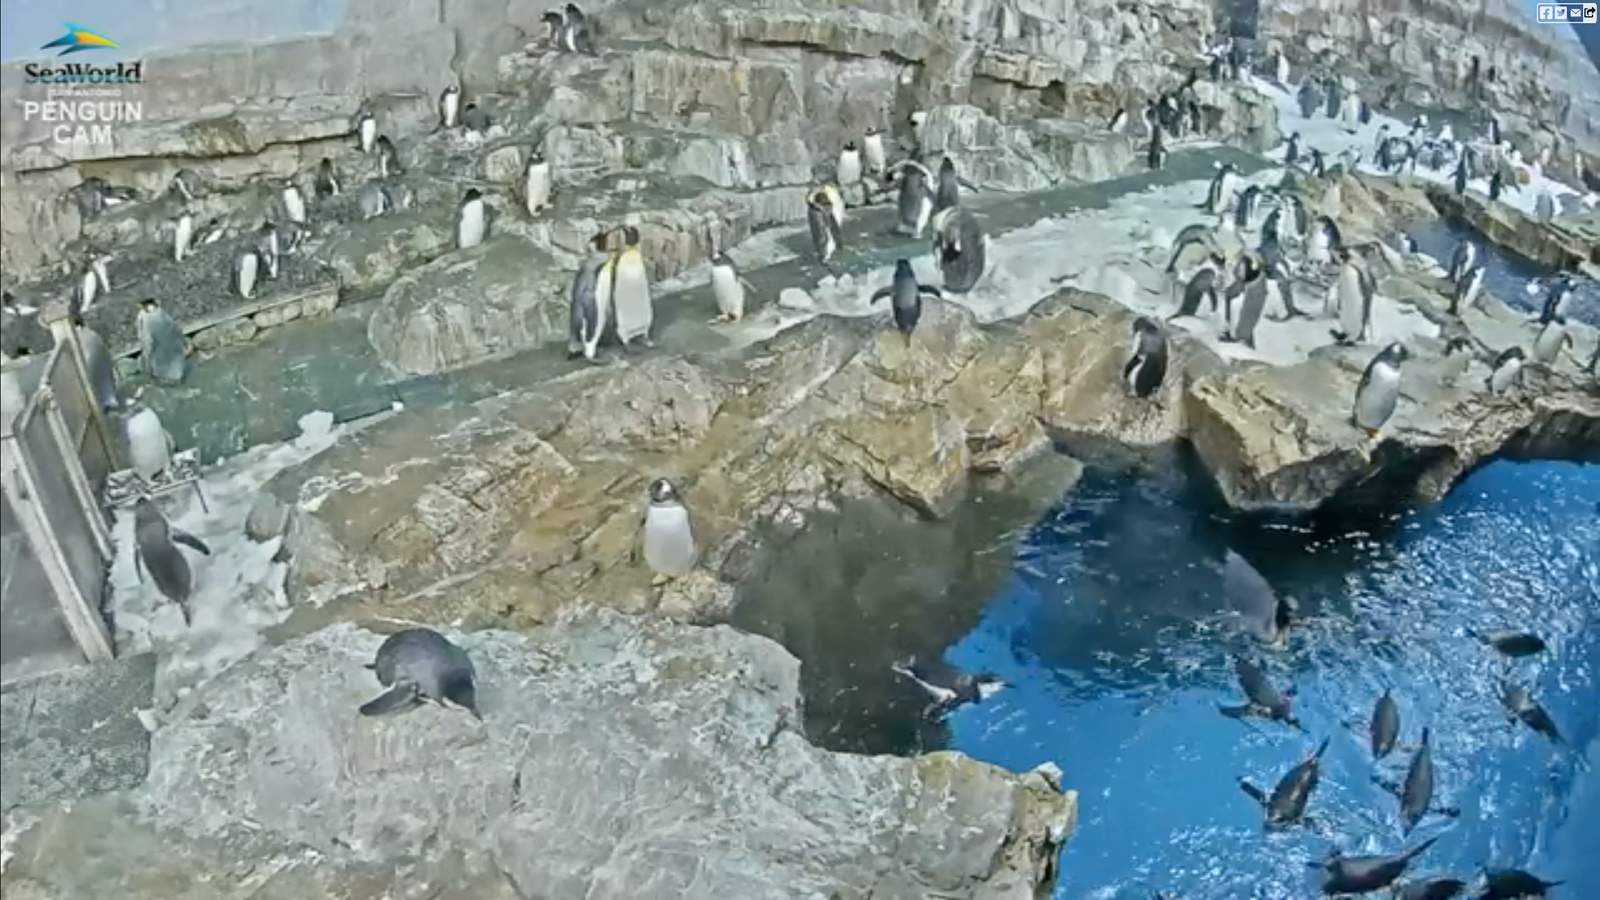 Penguin Cam: Chill with the penguins at SeaWorld San Antonio with 24/7 livestream